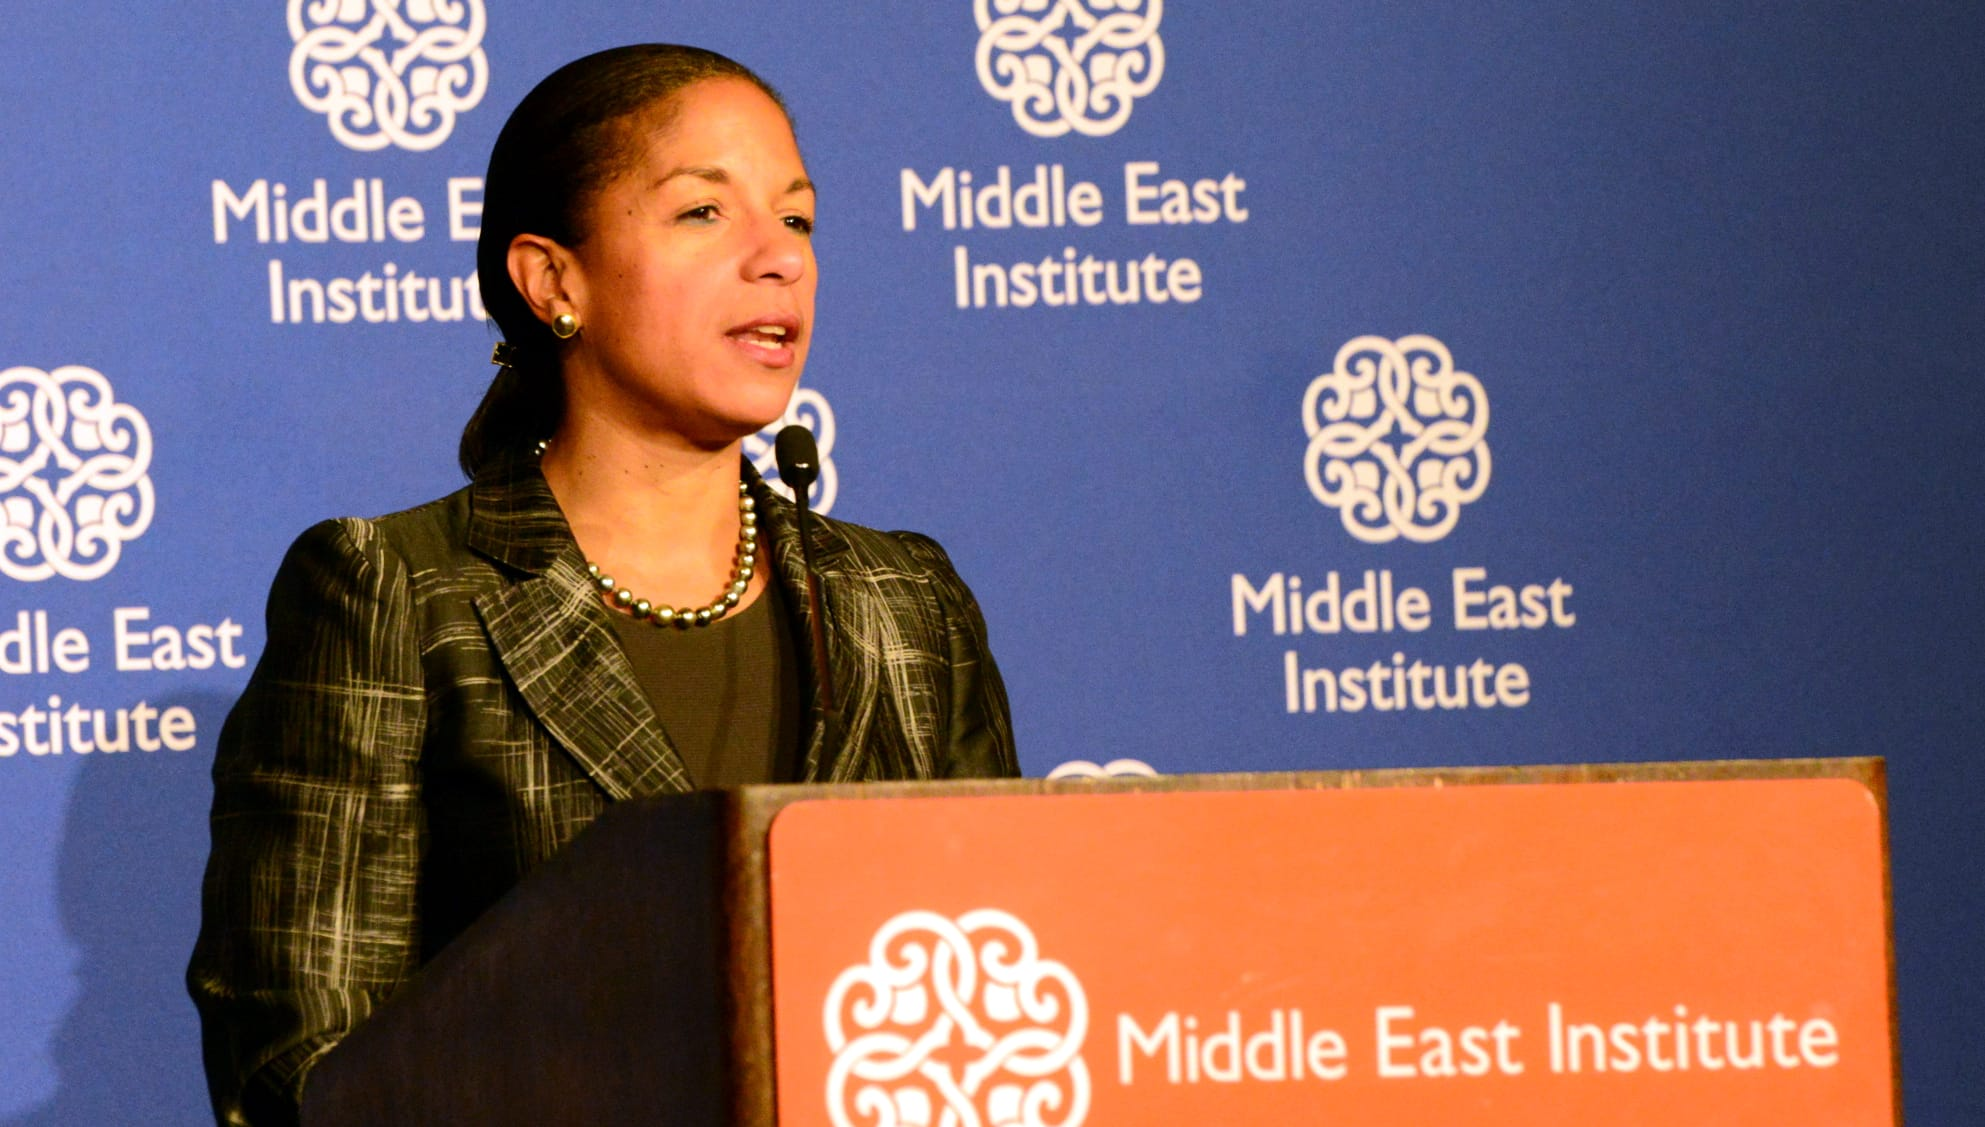 Remarks by National Security Advisor Susan E. Rice